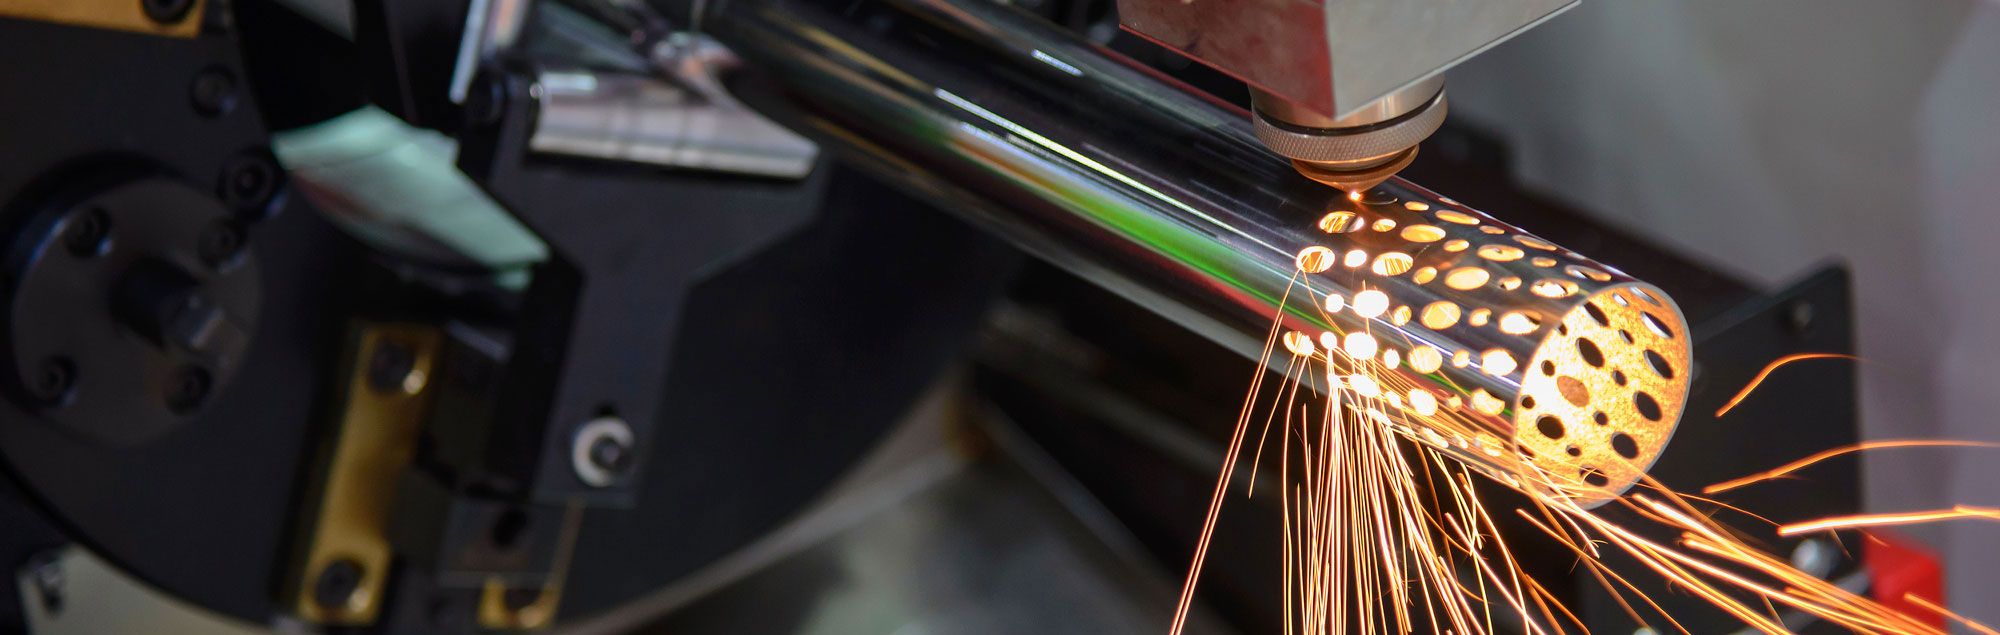 New fiber laser for laser cutting sheets and tubes